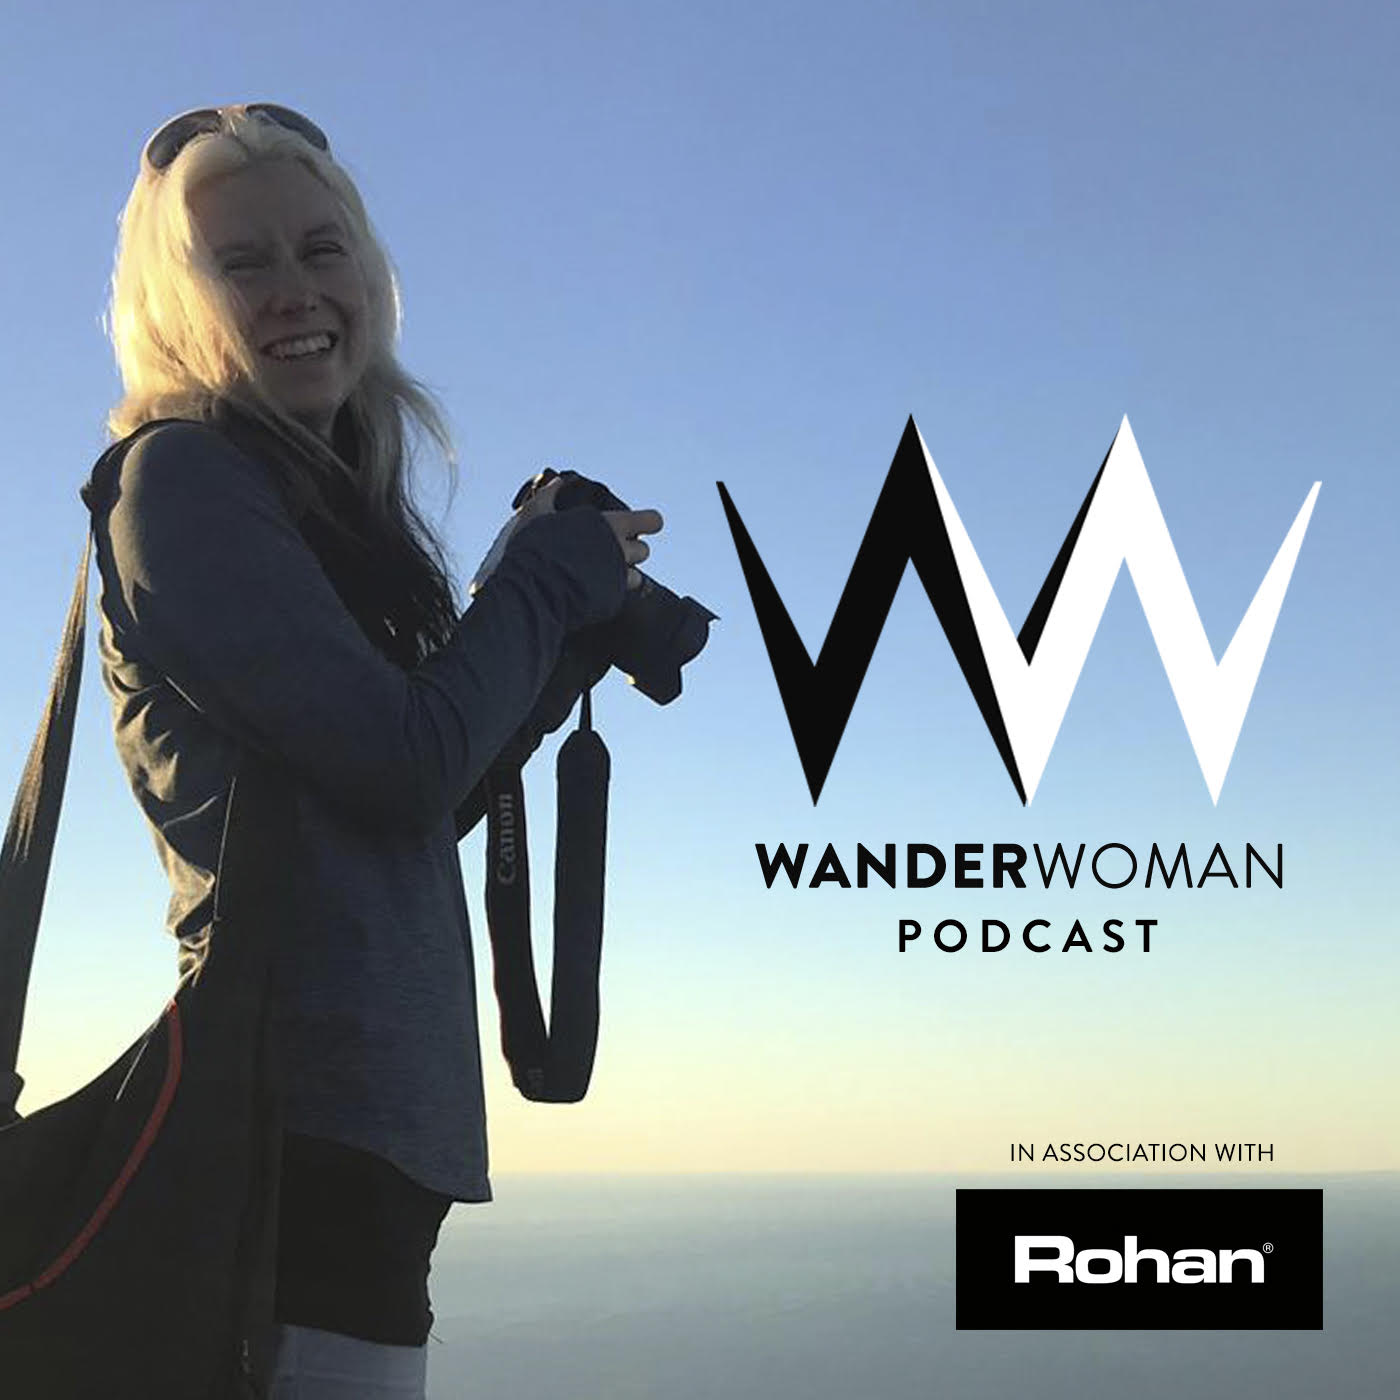 Wander Woman Podcast – is now live!